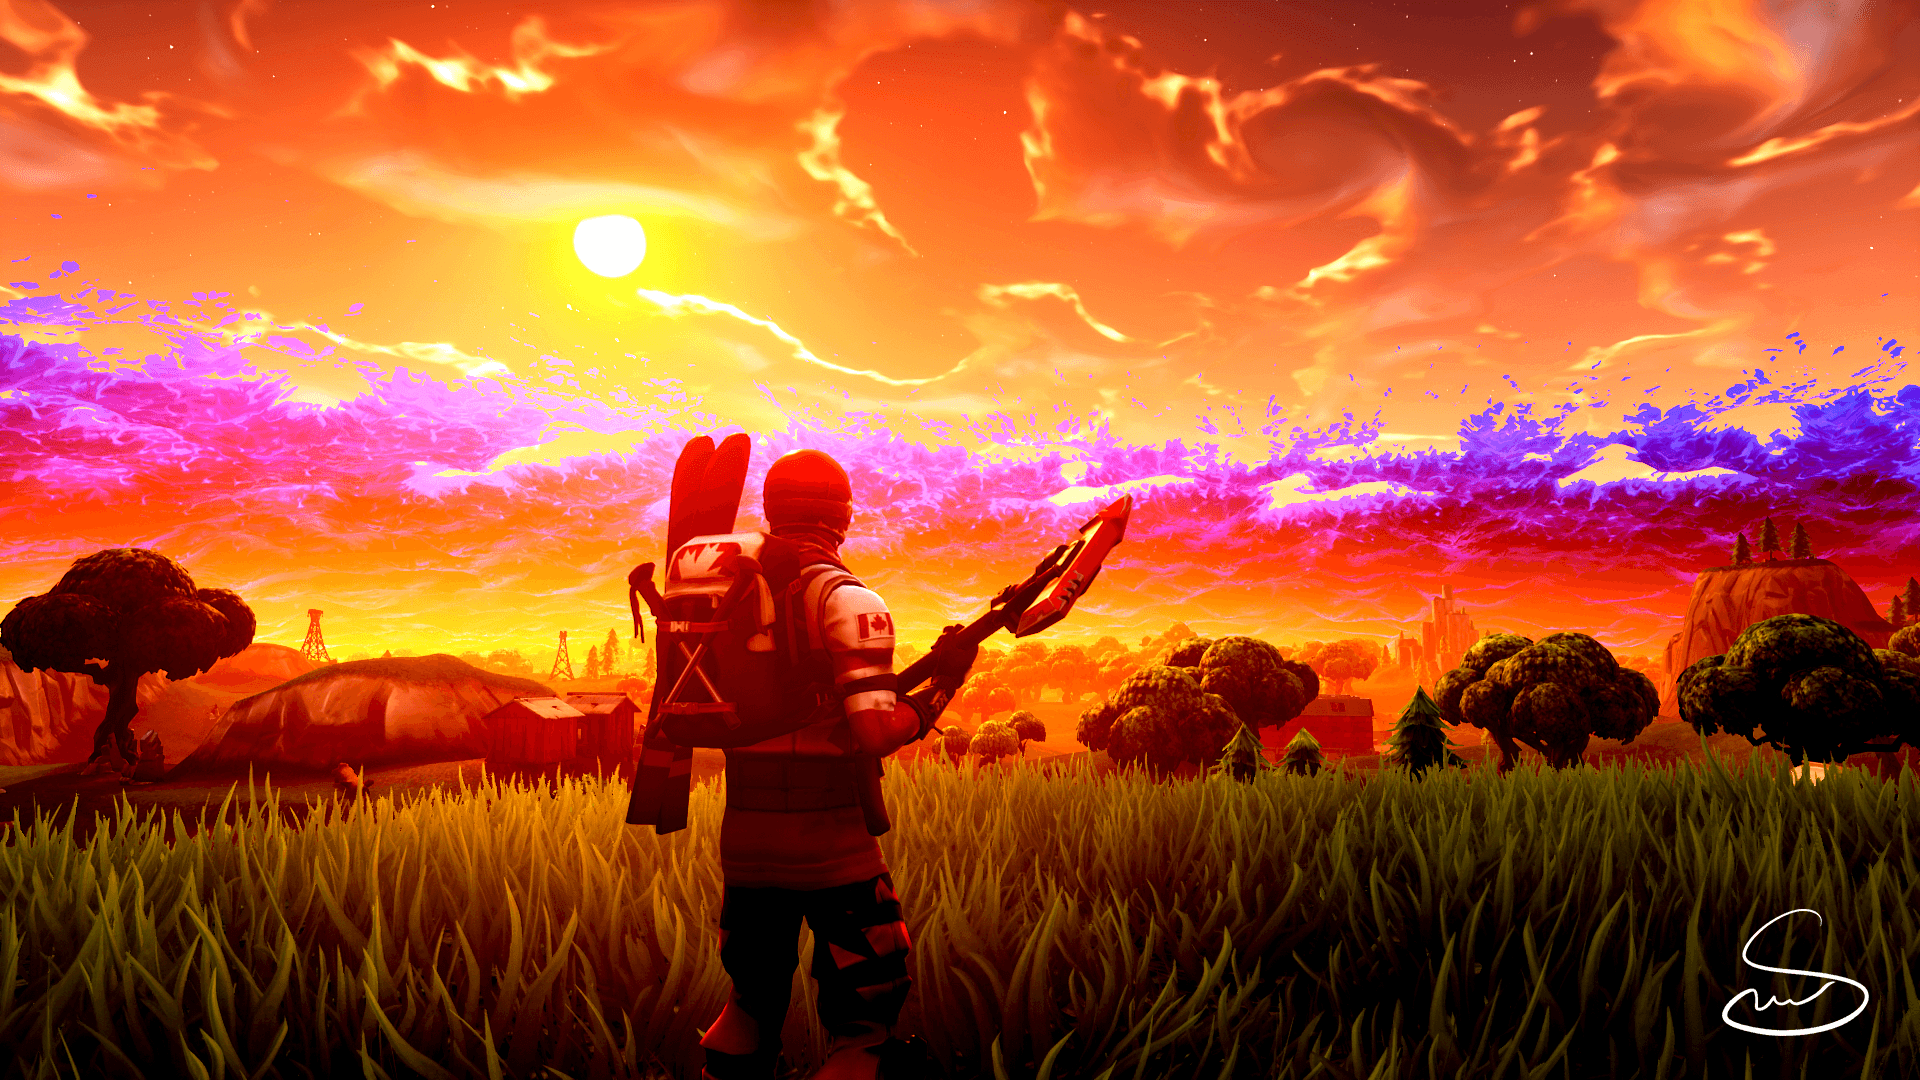 Sunset wallpaper, what do you think? : FortNiteBR